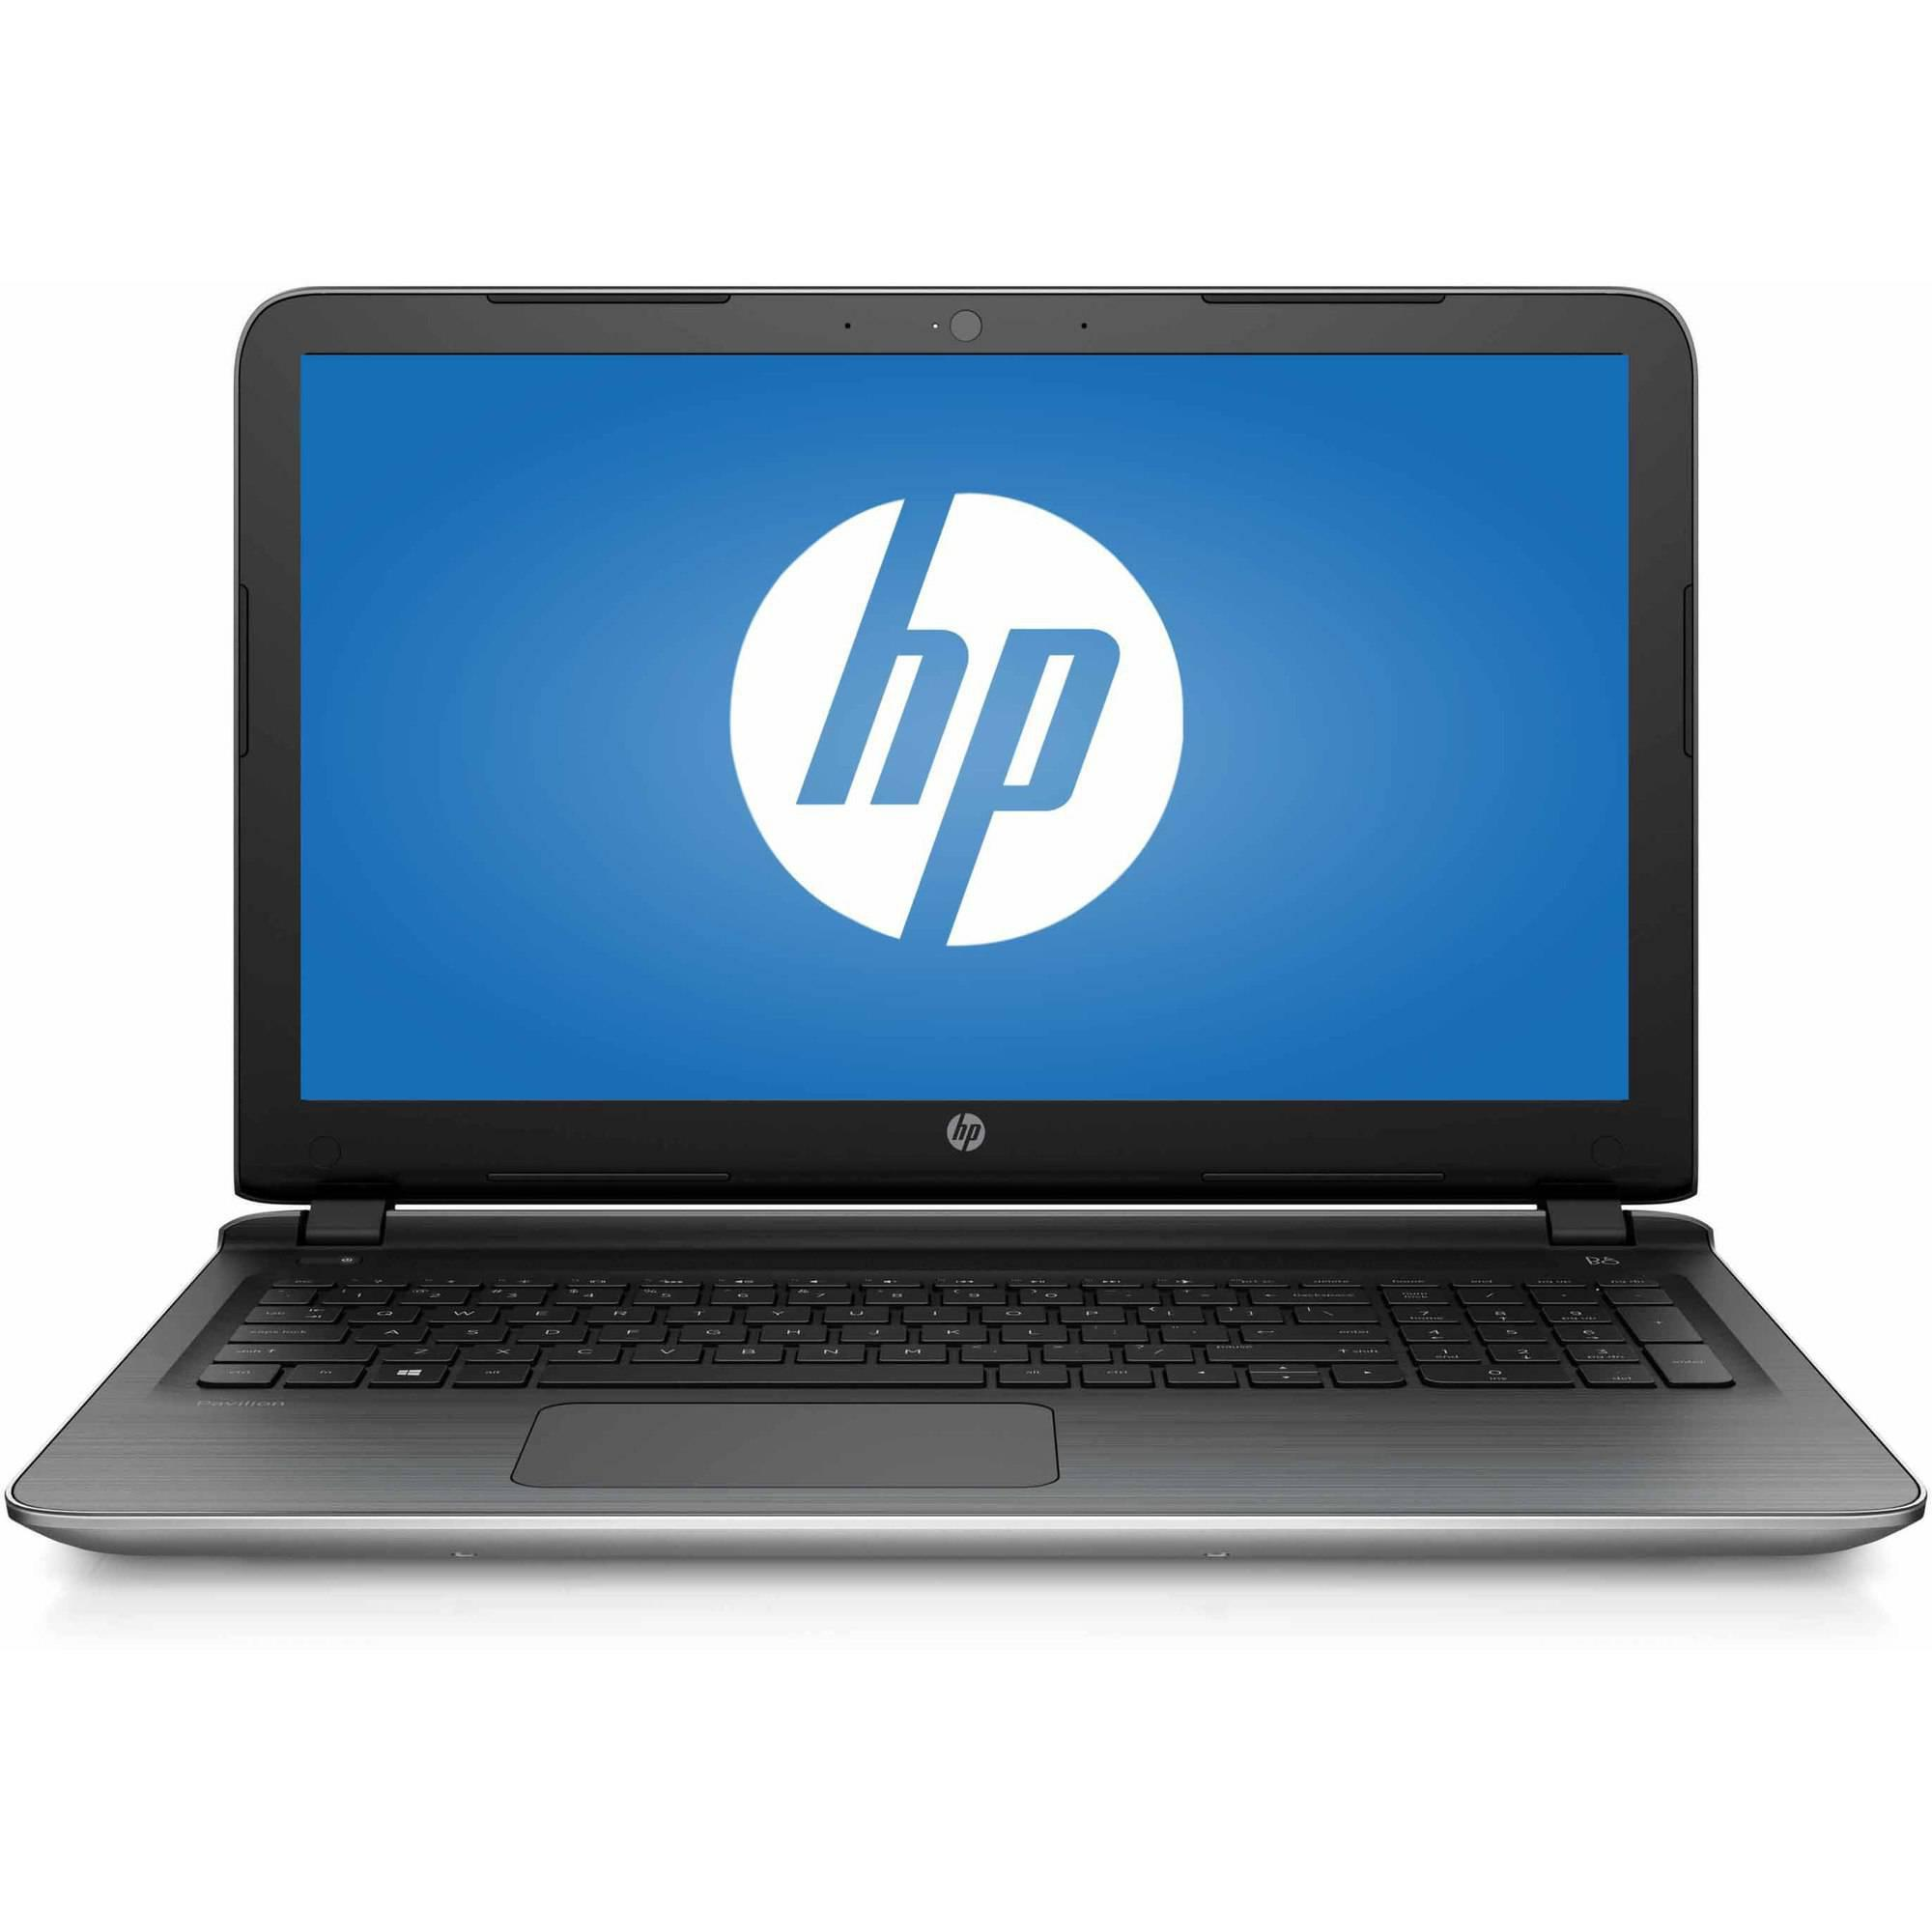 hp pavilion 17 g121wm 17 3 laptop amd a10 8700p. Black Bedroom Furniture Sets. Home Design Ideas